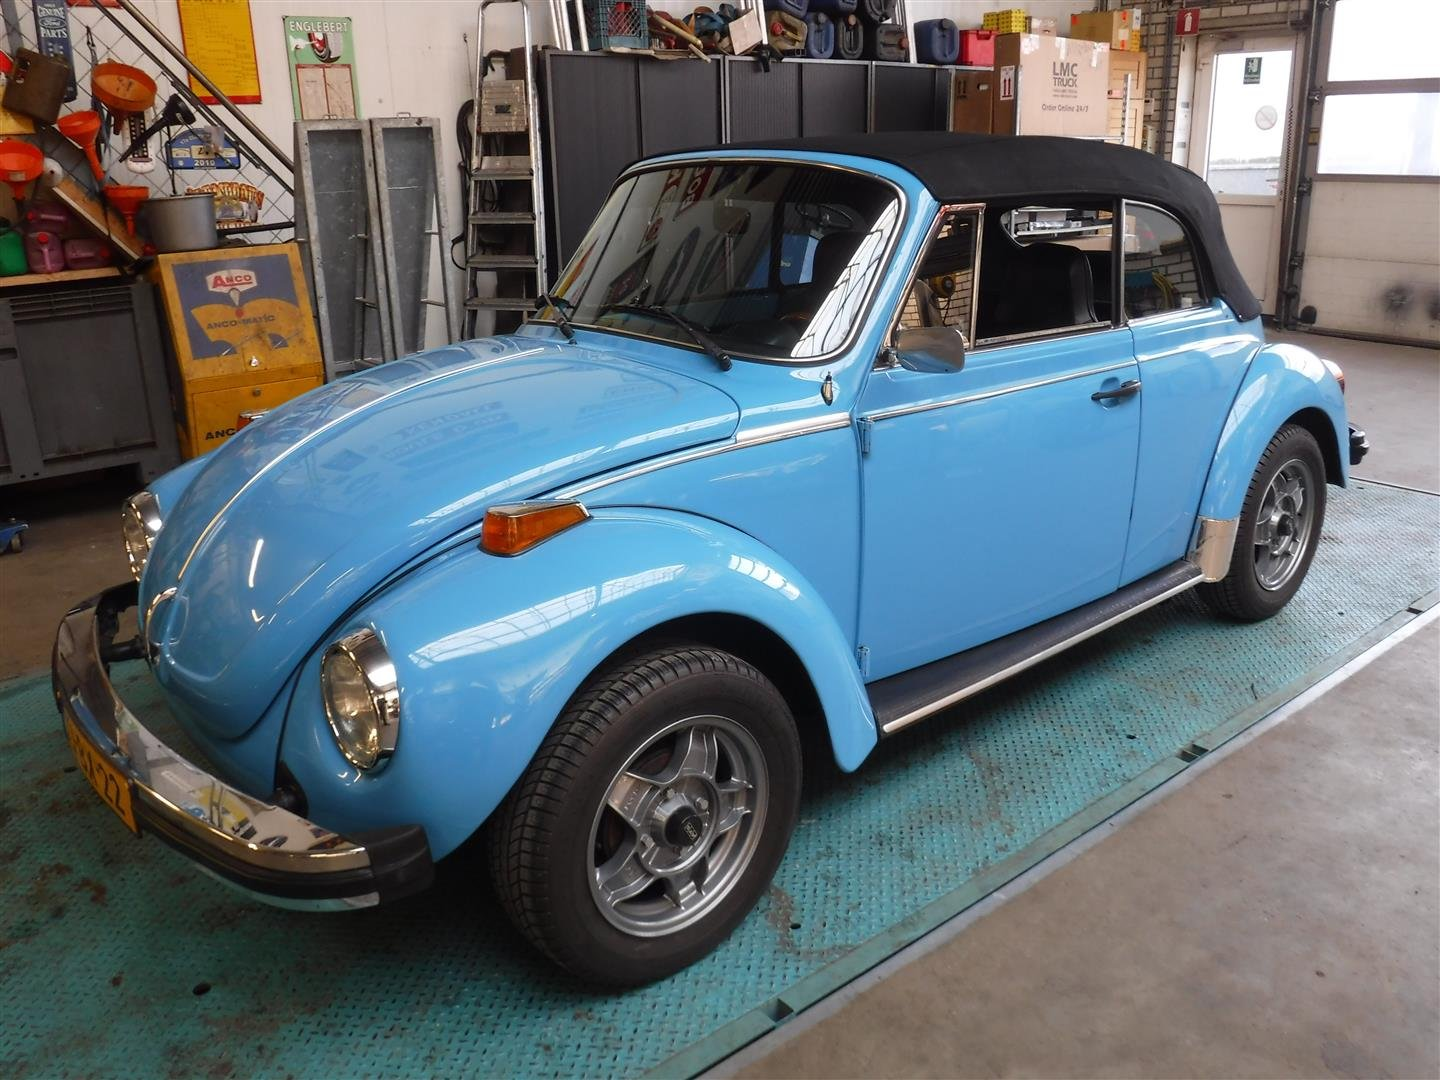 1976 Volkswagen 1303 S Cabrio For Sale (picture 1 of 6)